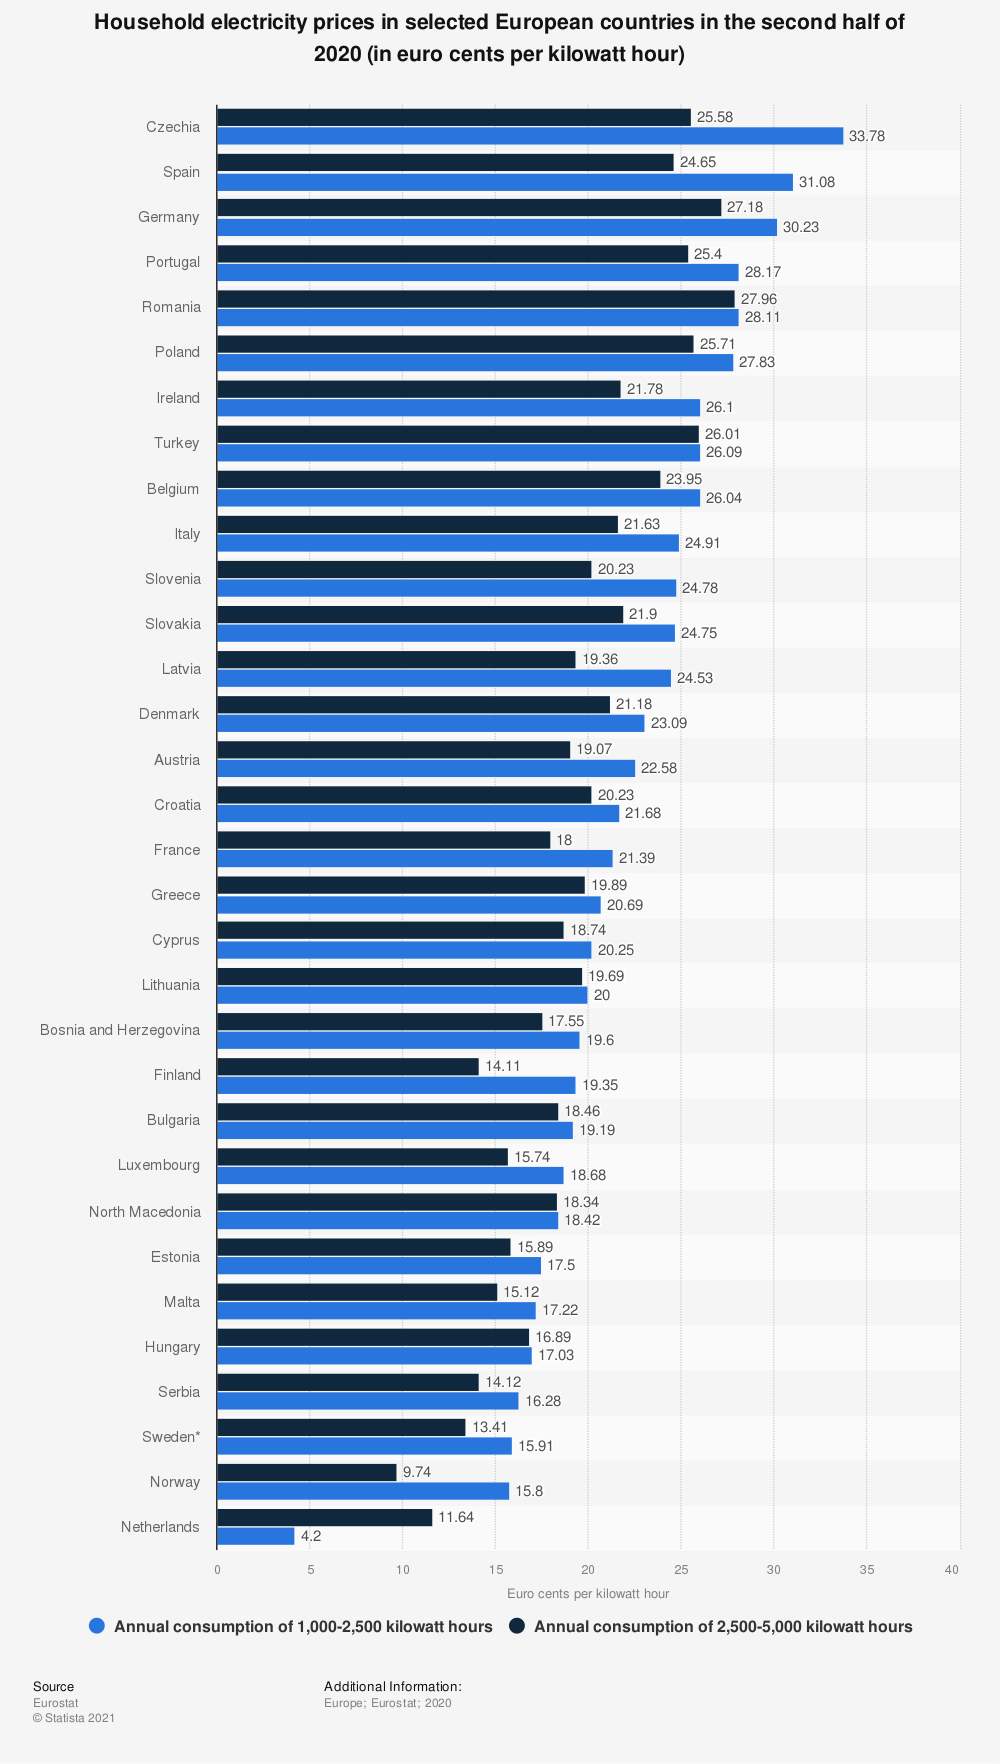 Statistic: Household electricity prices in selected European countries in the second half of 2020 (in euro cents per kilowatt hour) | Statista